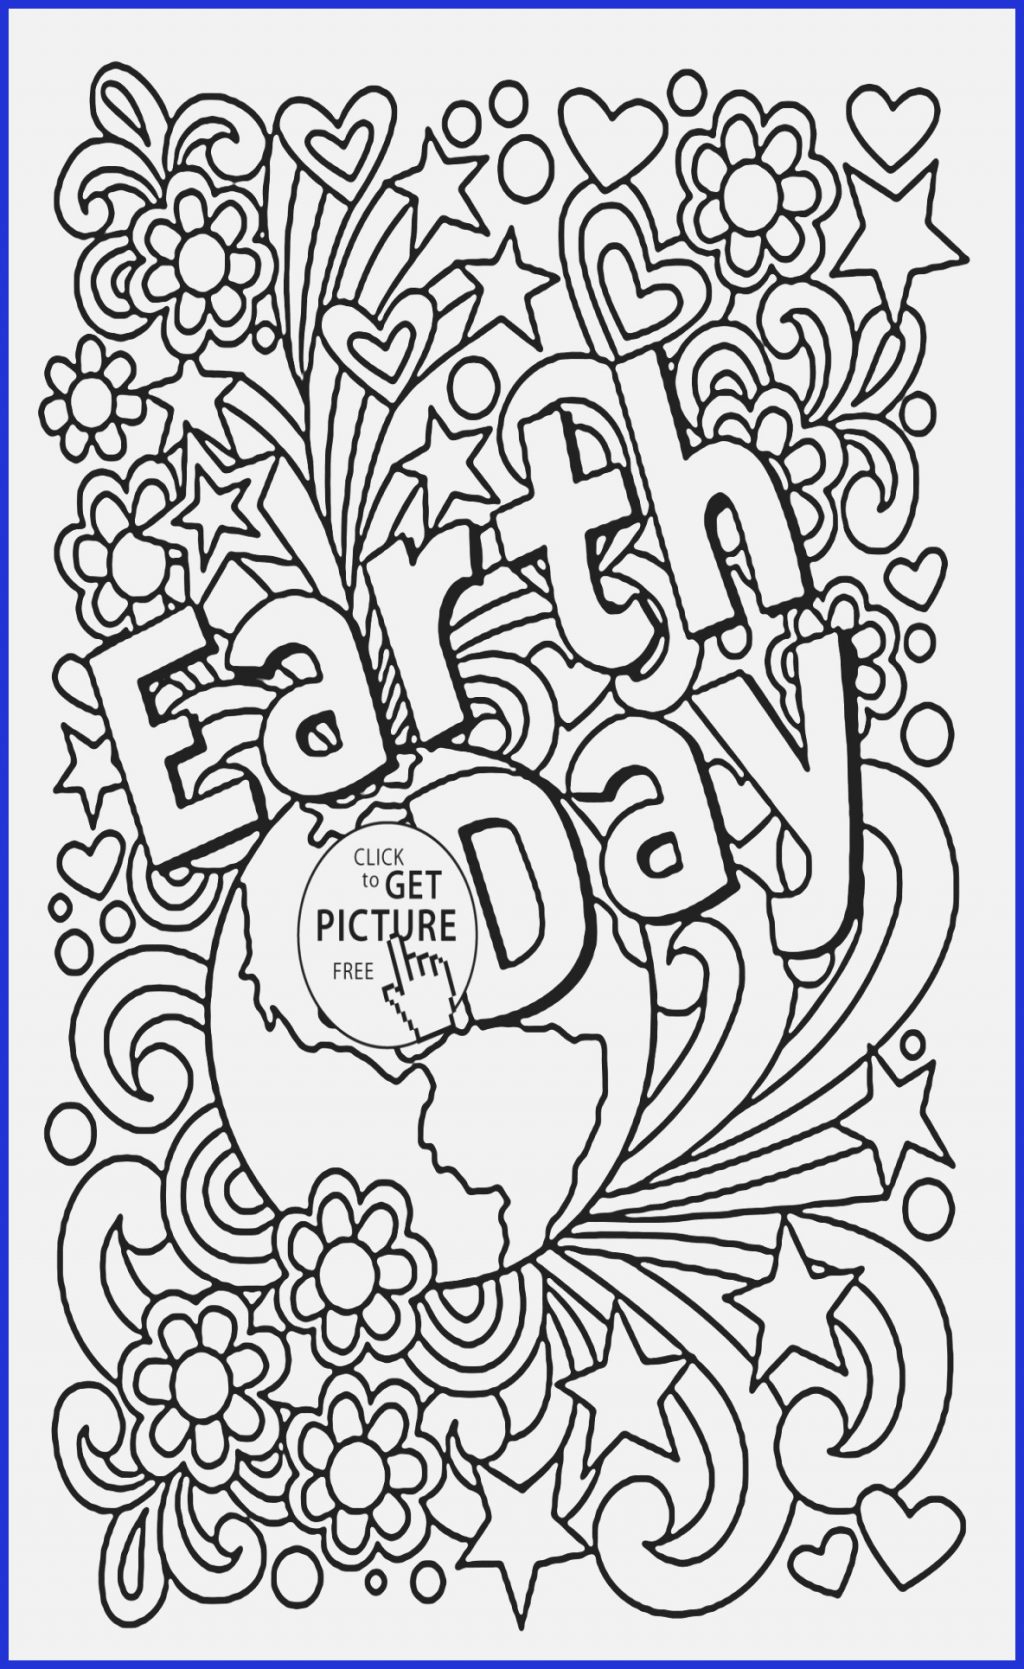 Free Printable Earth Day Coloring Pages And Activities Coloring Ideas Freerintable Earth Day Coloringages And Activities